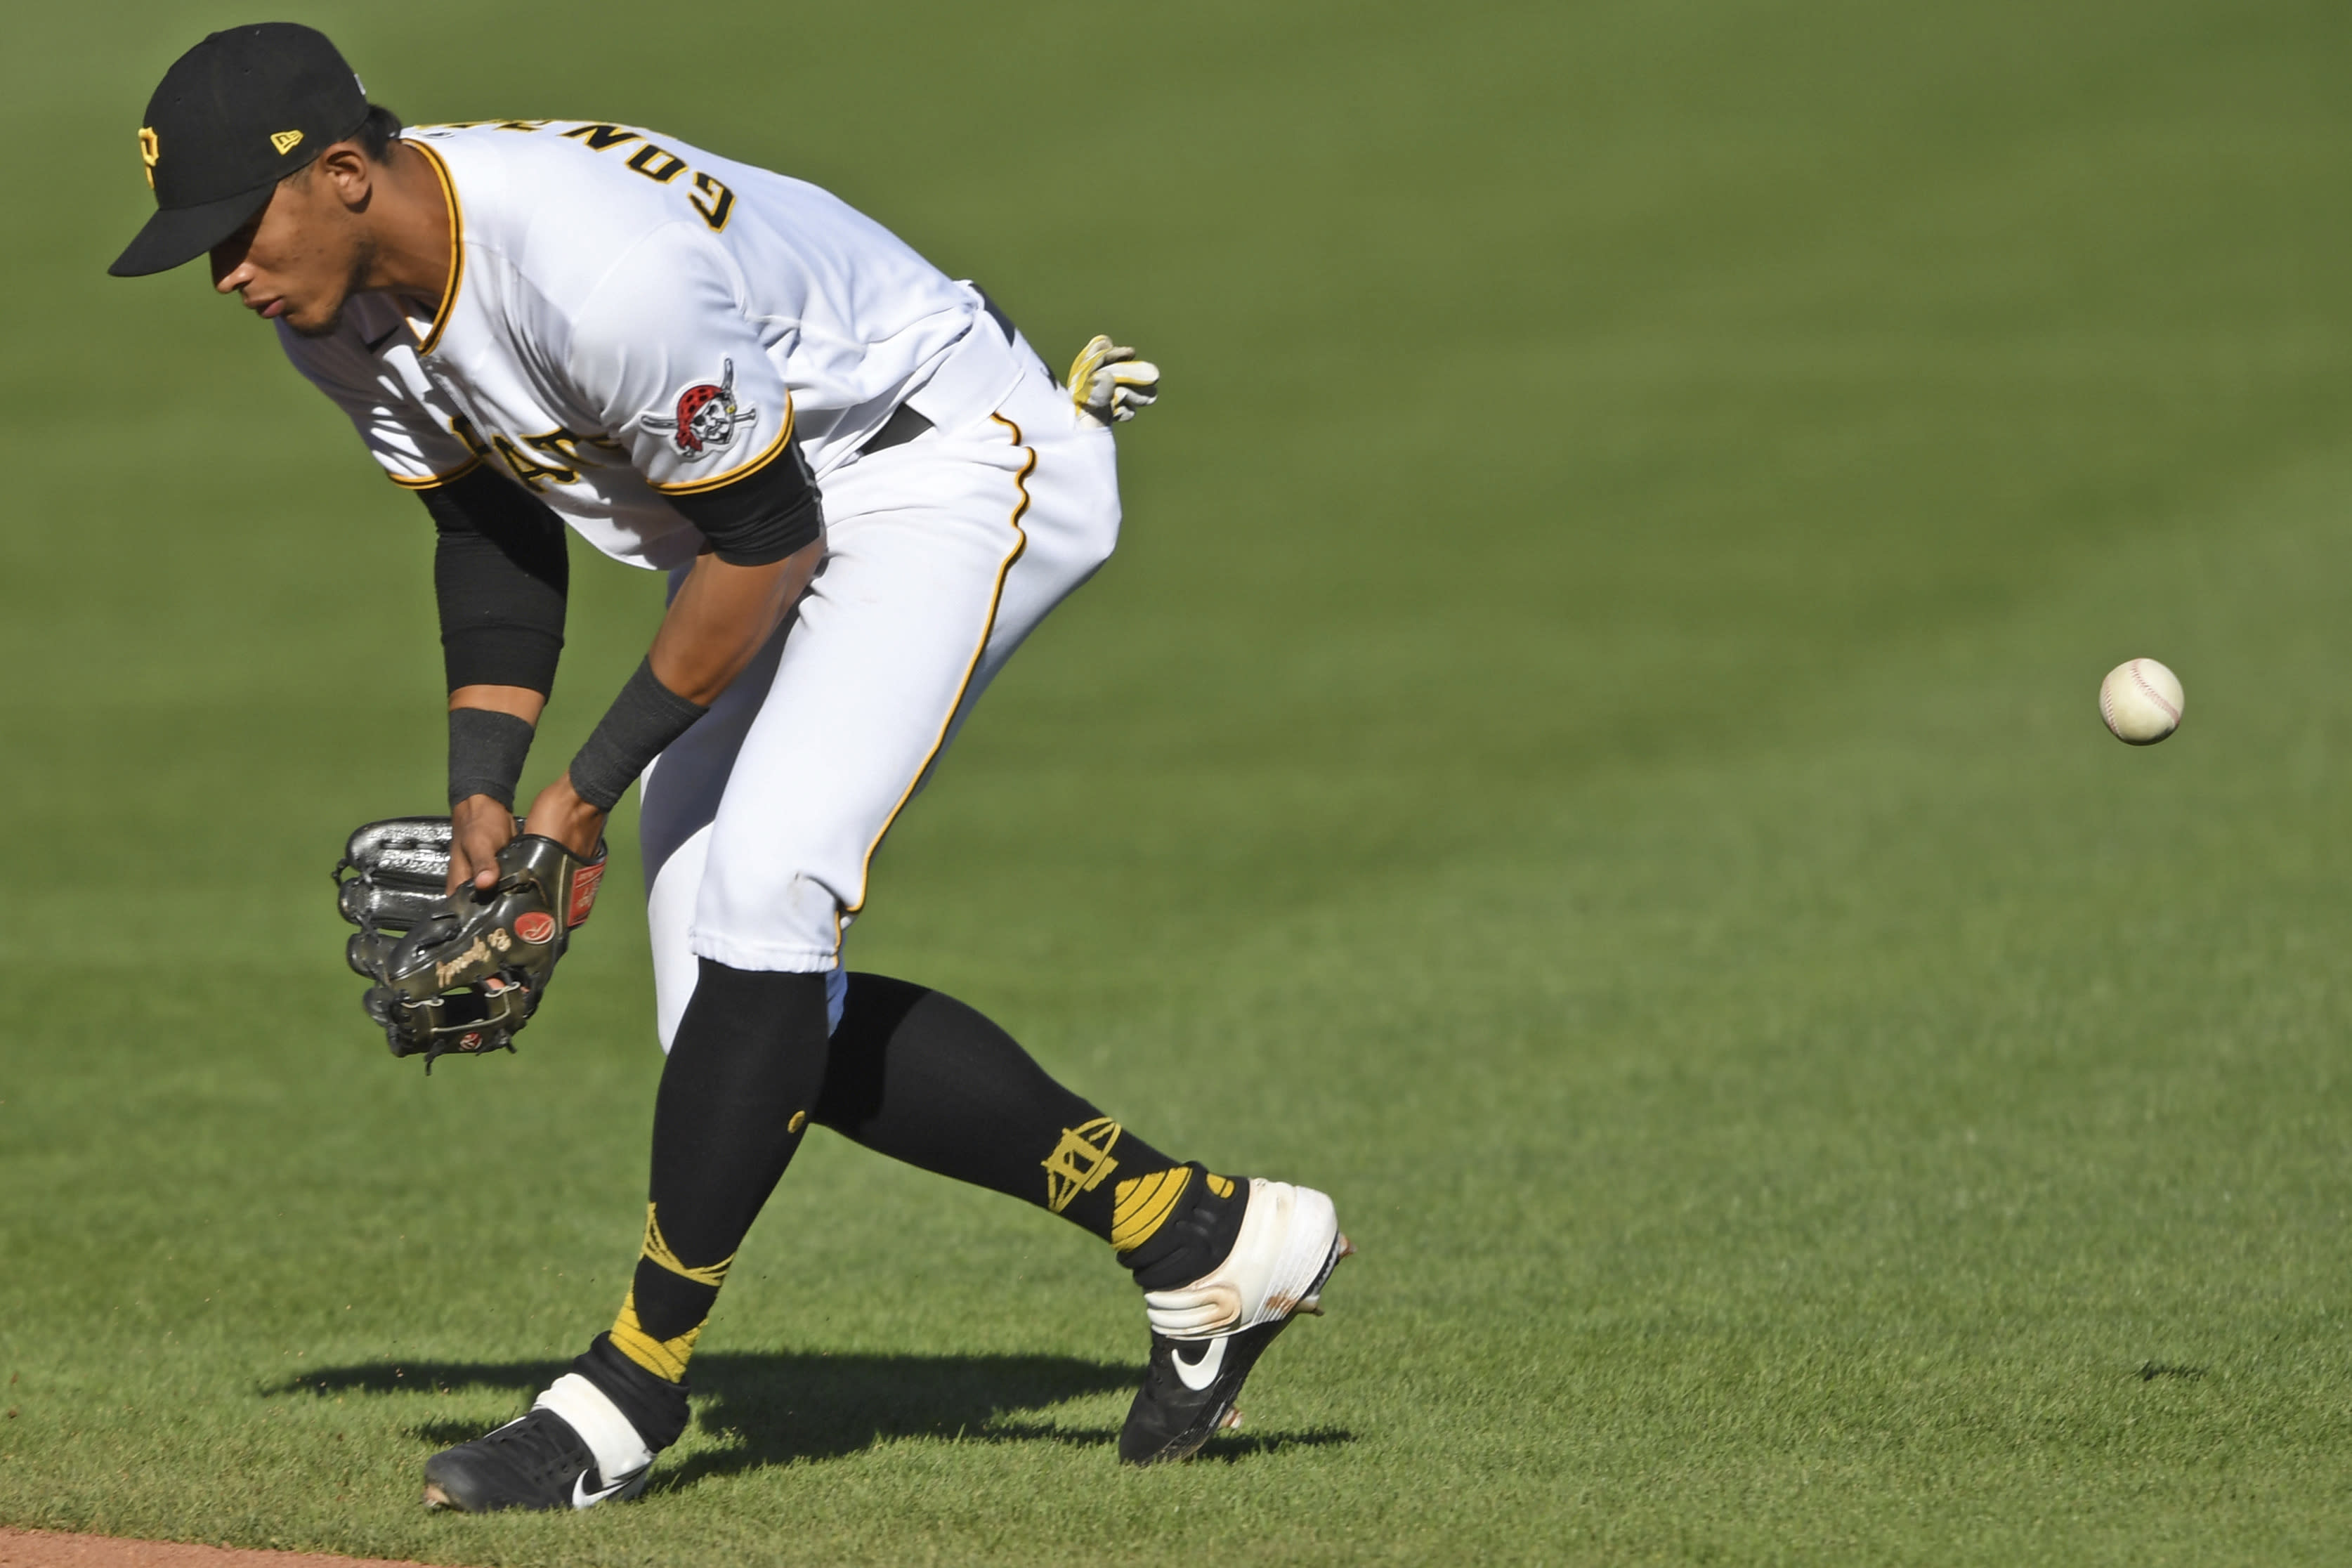 Pittsburgh Pirates' Erik Gonzalez misplays a ball hit by St. Louis Cardinals' Brad Miller during the fourth inning of a baseball game, Sunday, Sept. 20, 2020, in Pittsburgh. (AP Photo/David Dermer) Pennsylvania